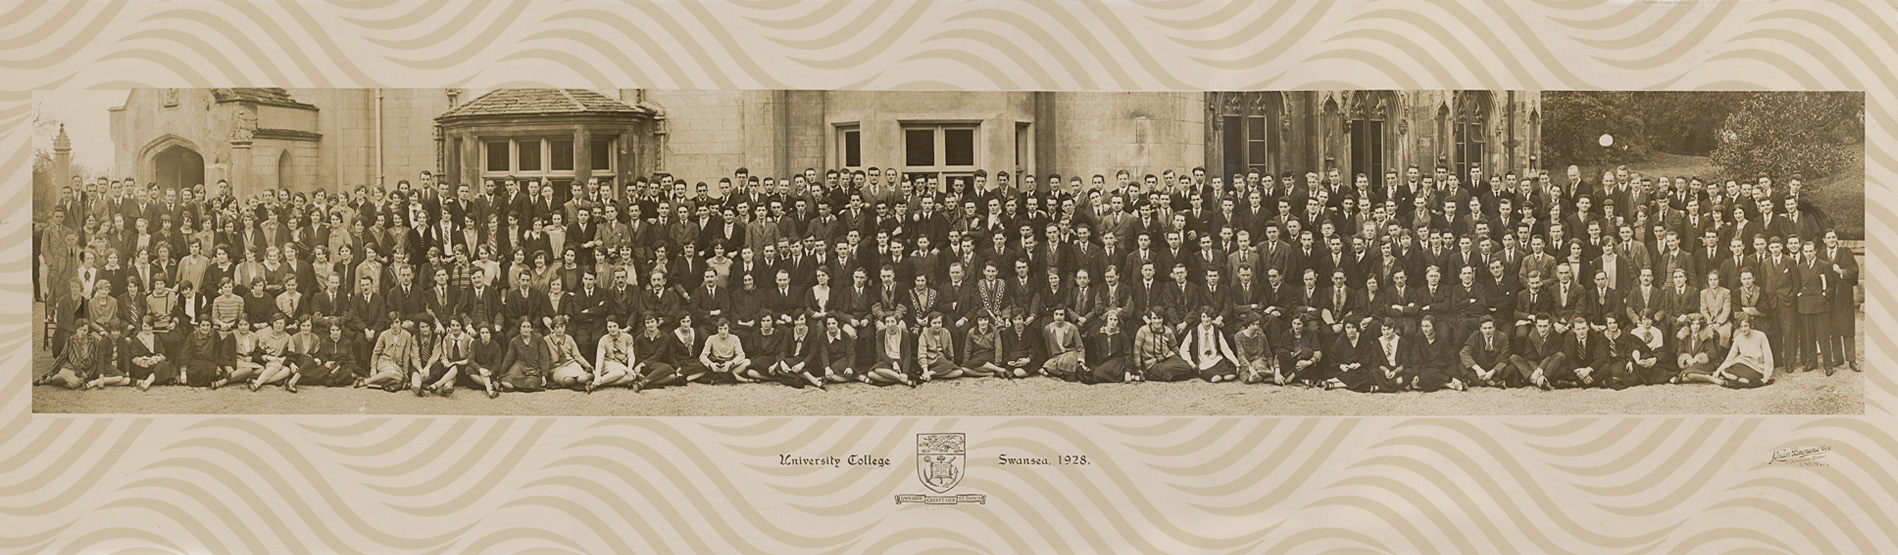 1928 university staff and student group photo outside the Abbey building